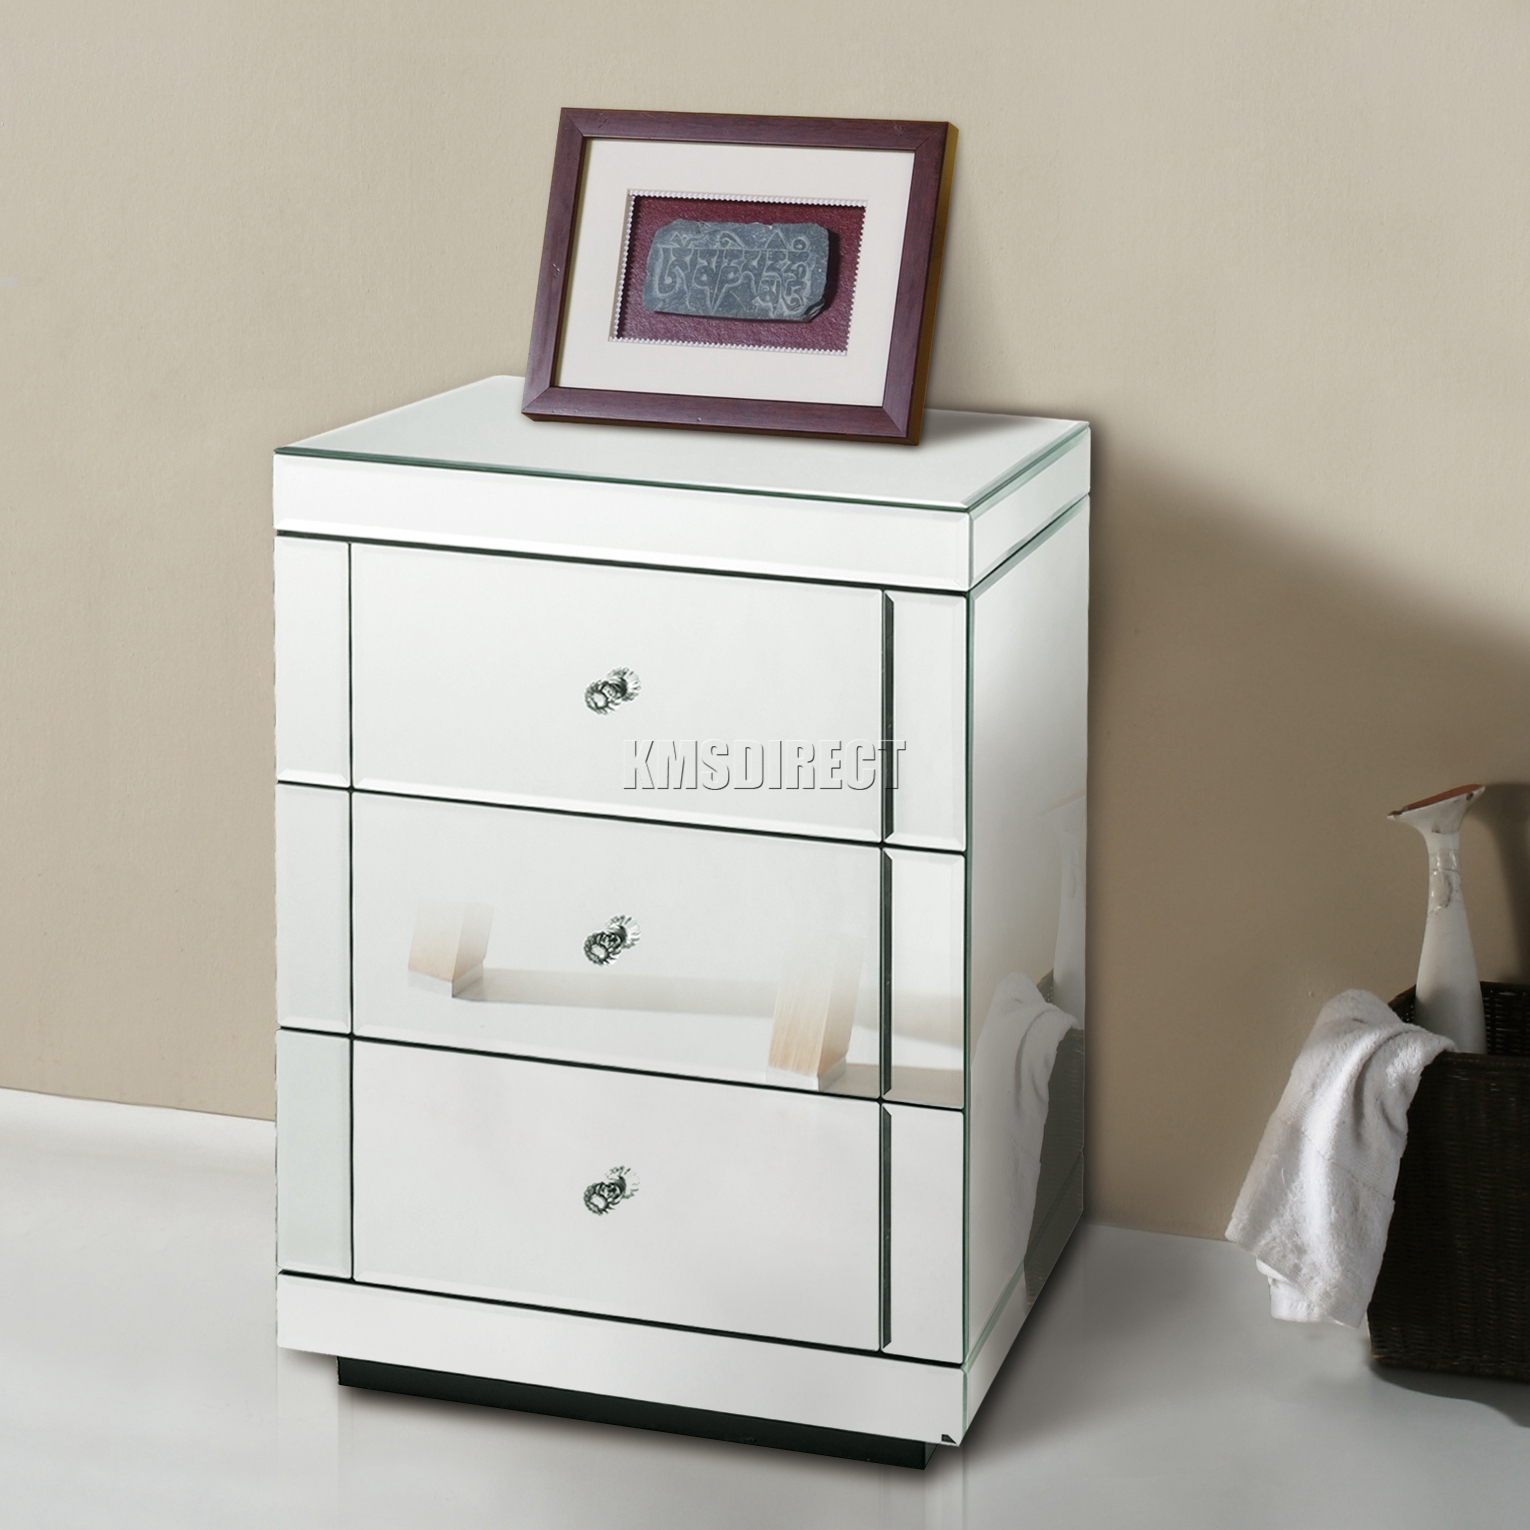 westwood mirrored furniture glass bedside cabinet table with drawer bedroom new ebay. Black Bedroom Furniture Sets. Home Design Ideas